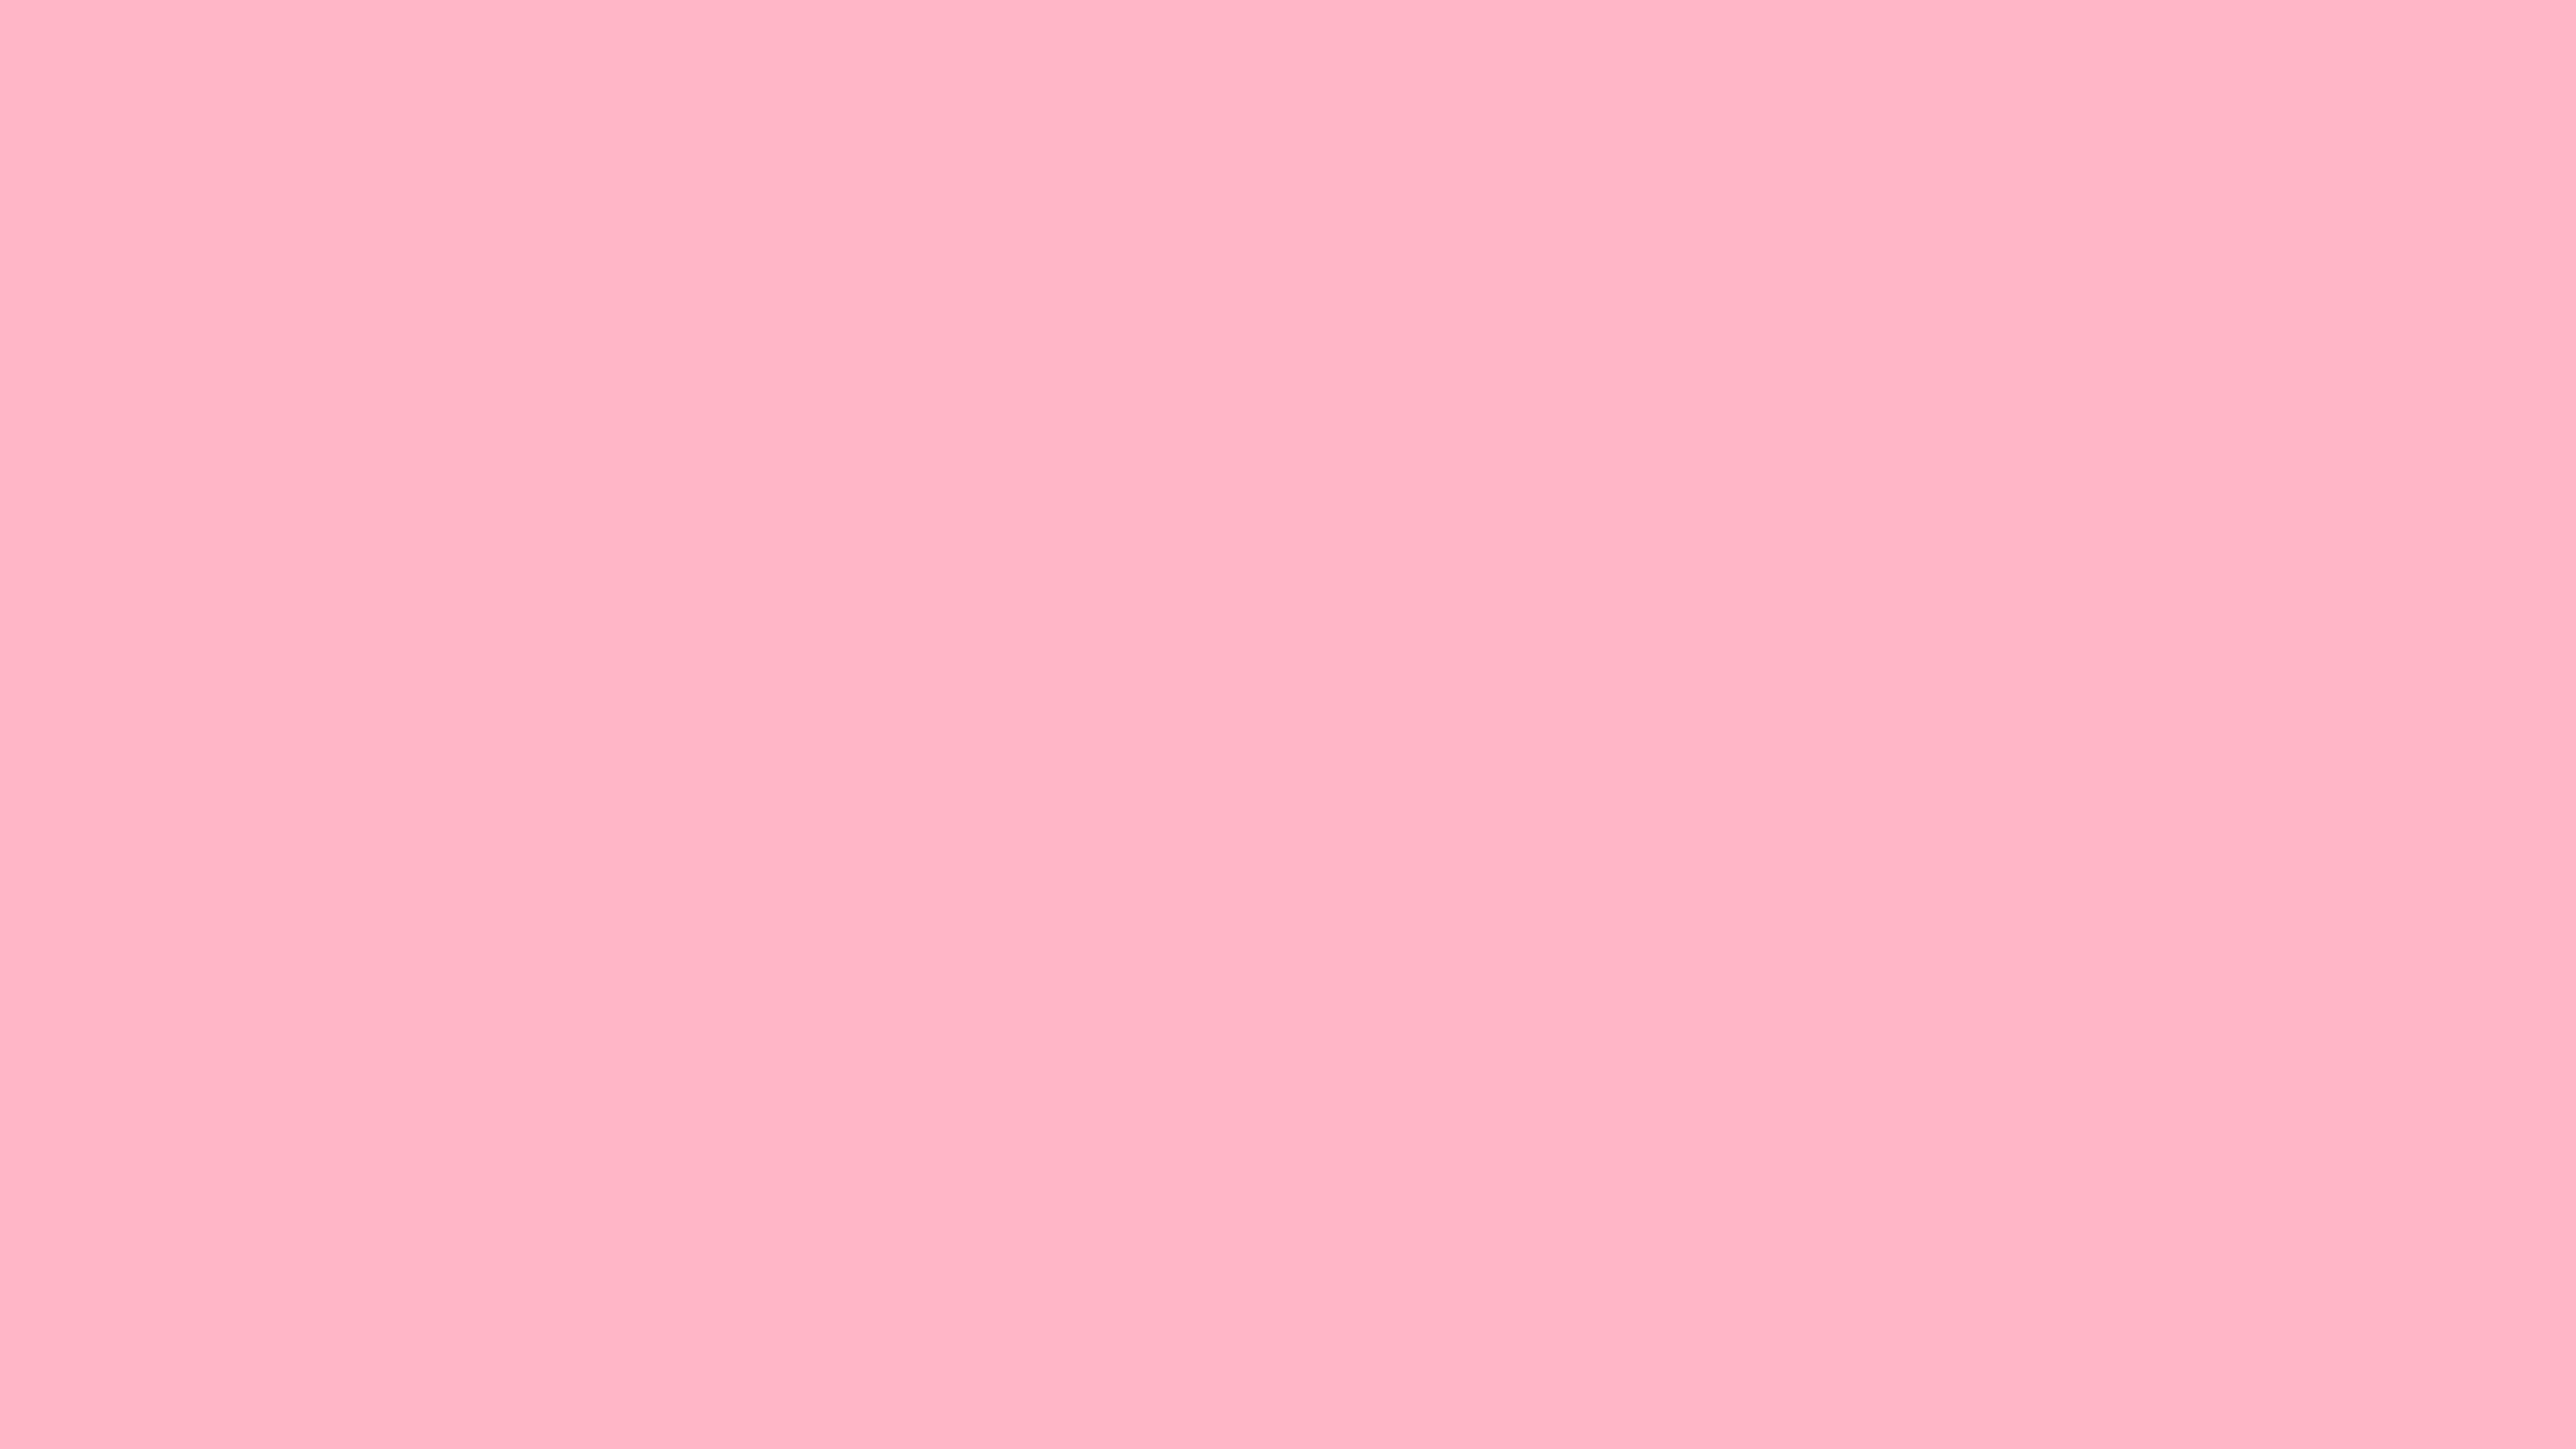 5120x2880 Cherry Blossom Pink Solid Color Background